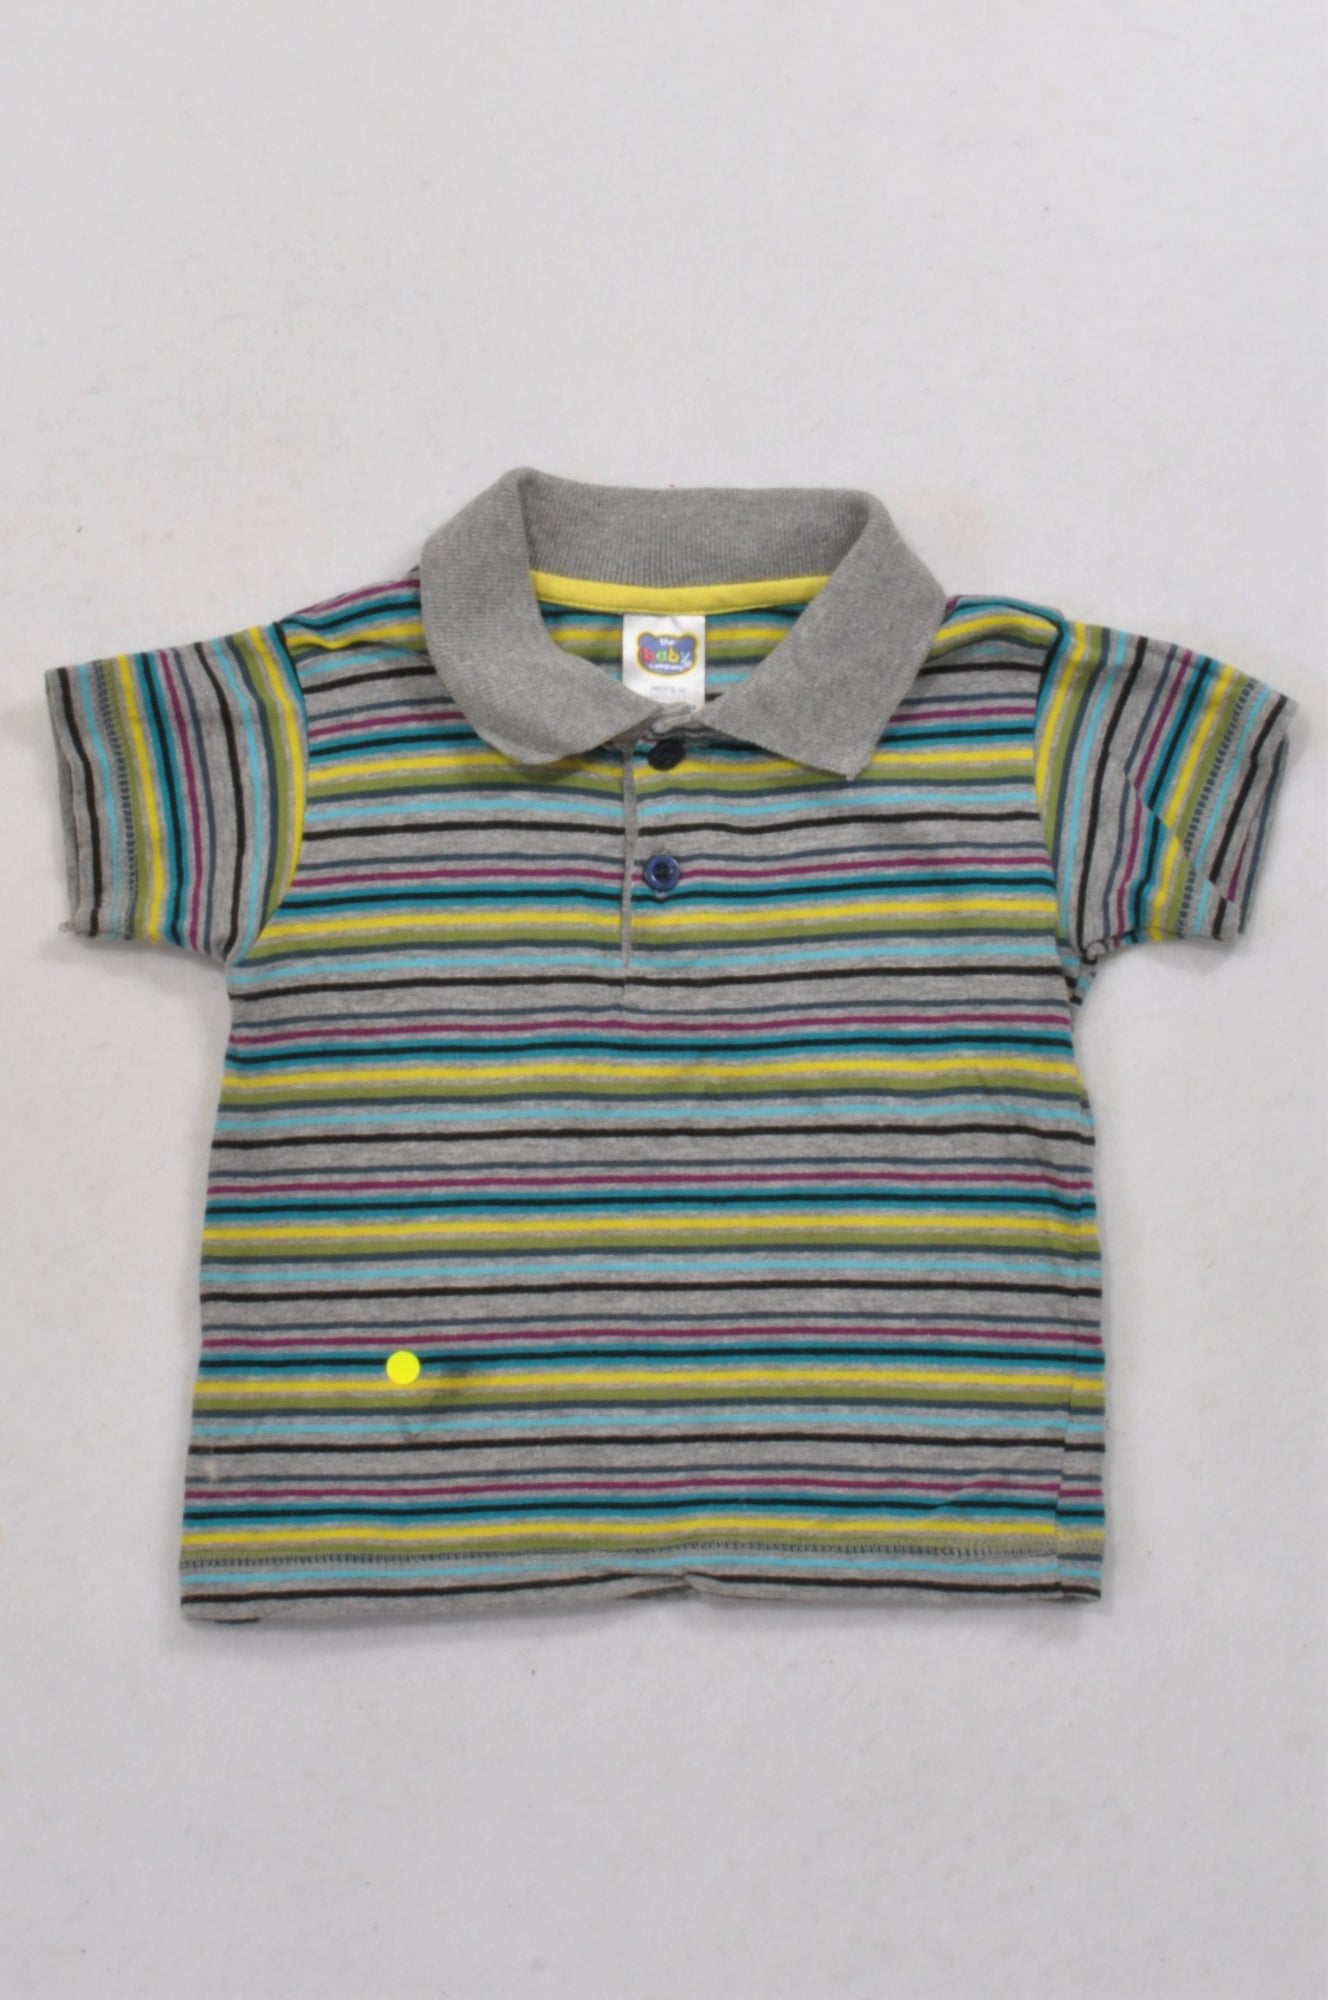 Ackermans Multicolored Stripe Golf Shirt Boys 6-12 months